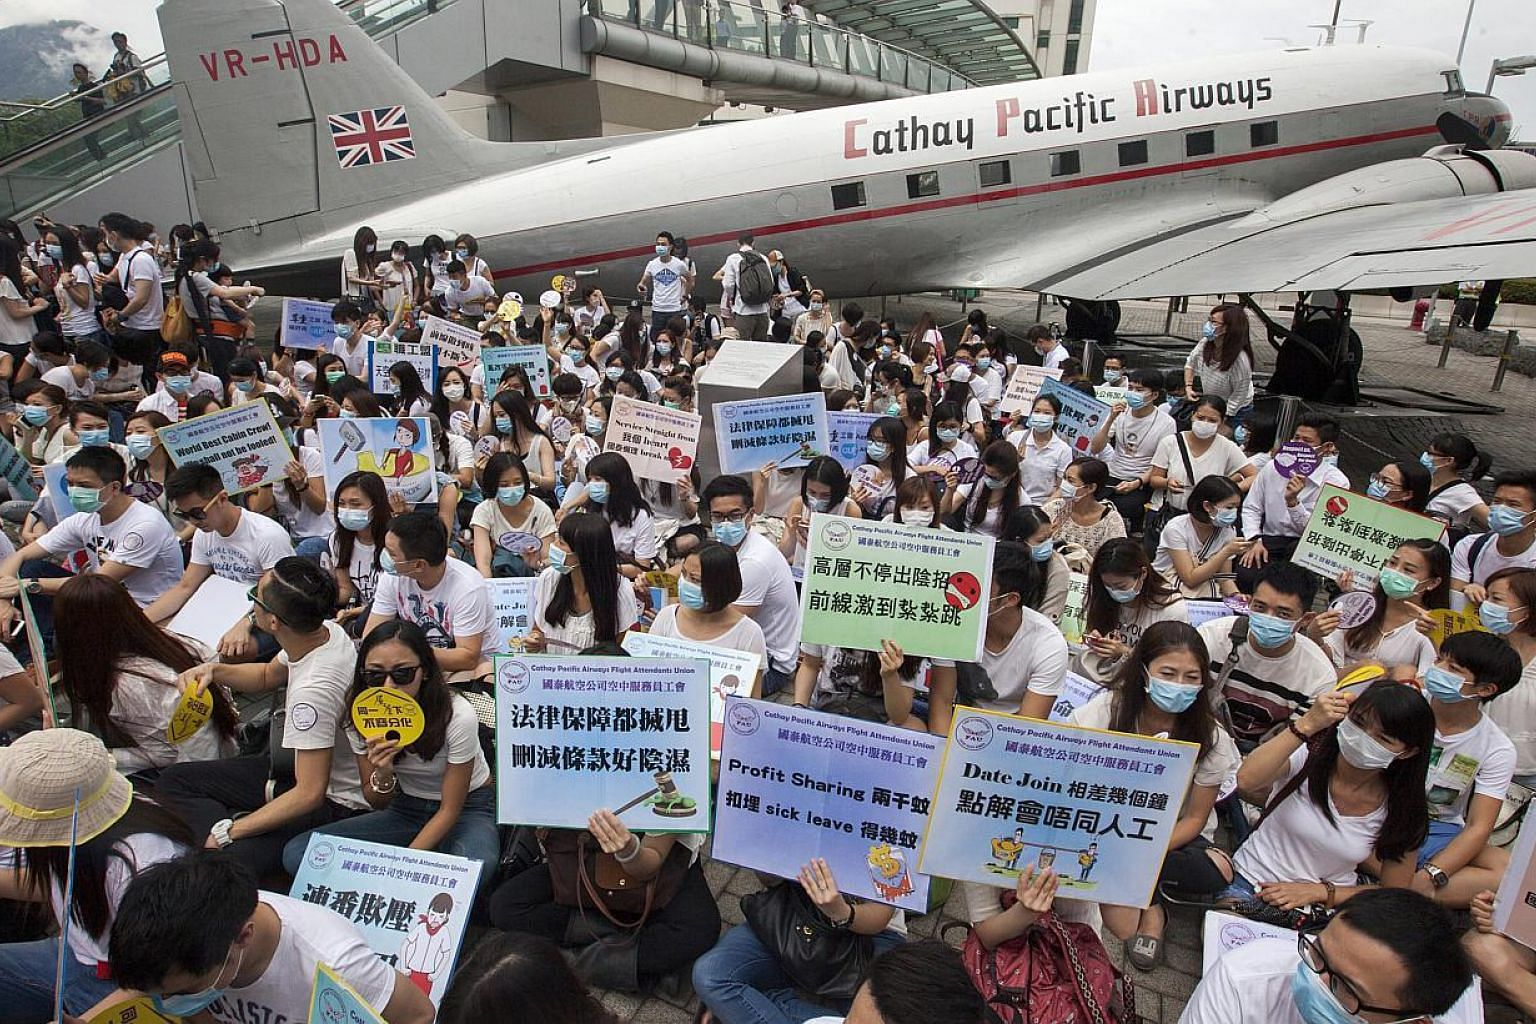 Flight attendants from Hong Kong's flag carrier airline Cathay Pacific stage a pay protest outside Cathay Pacific's management headquarters at Cathay City, Lantau Island, Hong Kong, China onMay 21,2015. The Cathay Pacific Airways flight a